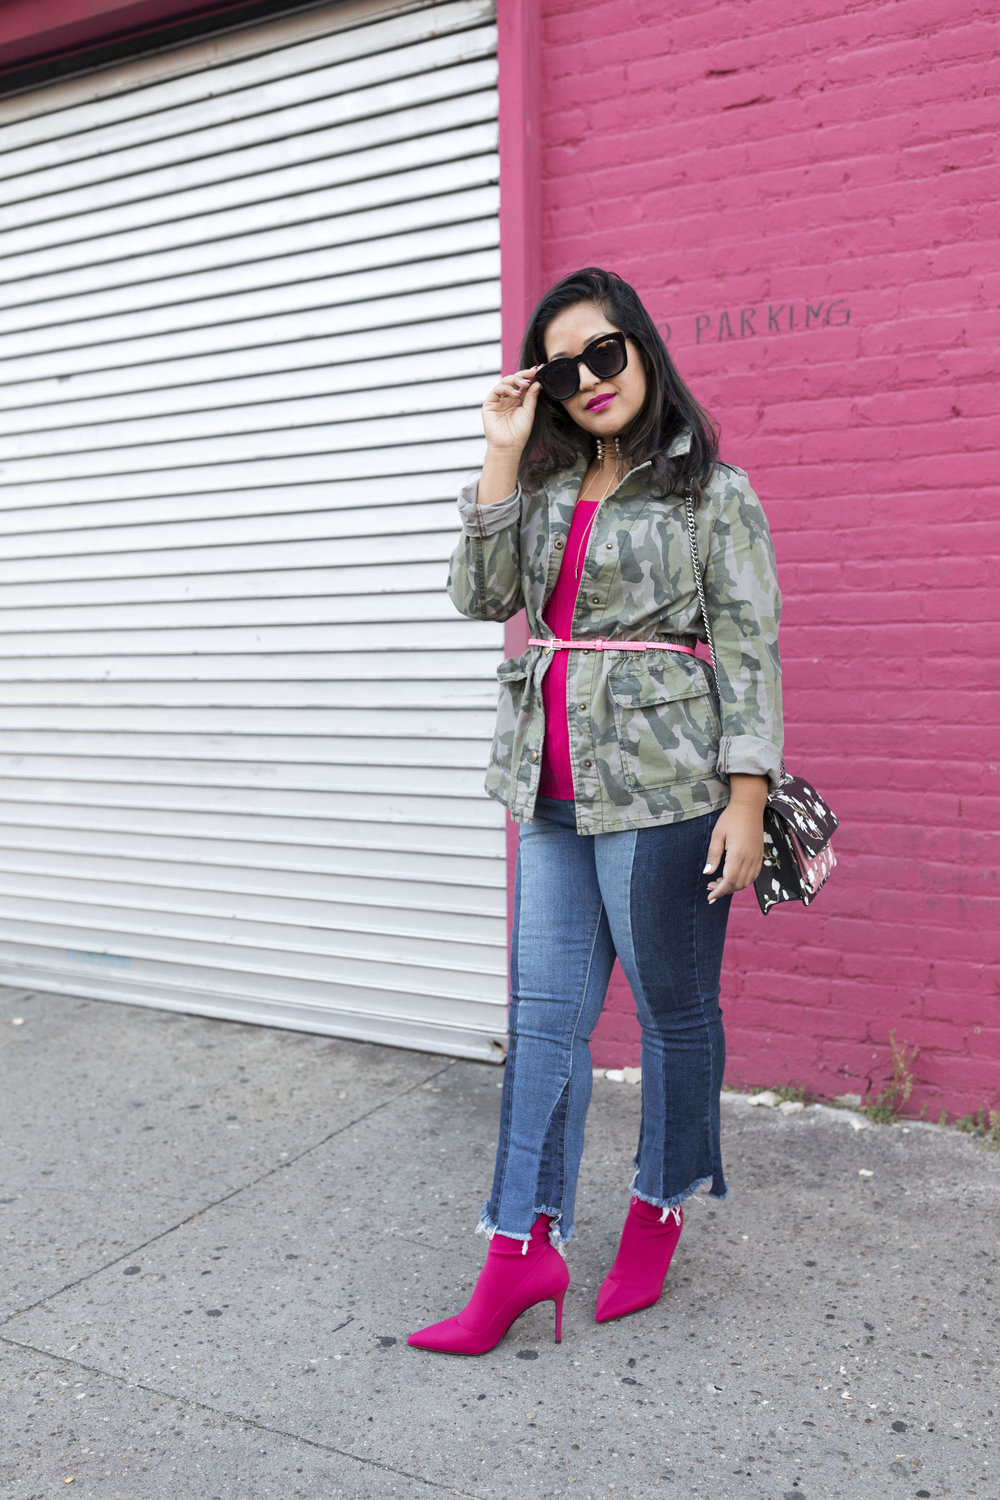 Krity S x Pink Sock Boots x Casual Look 2.jpg